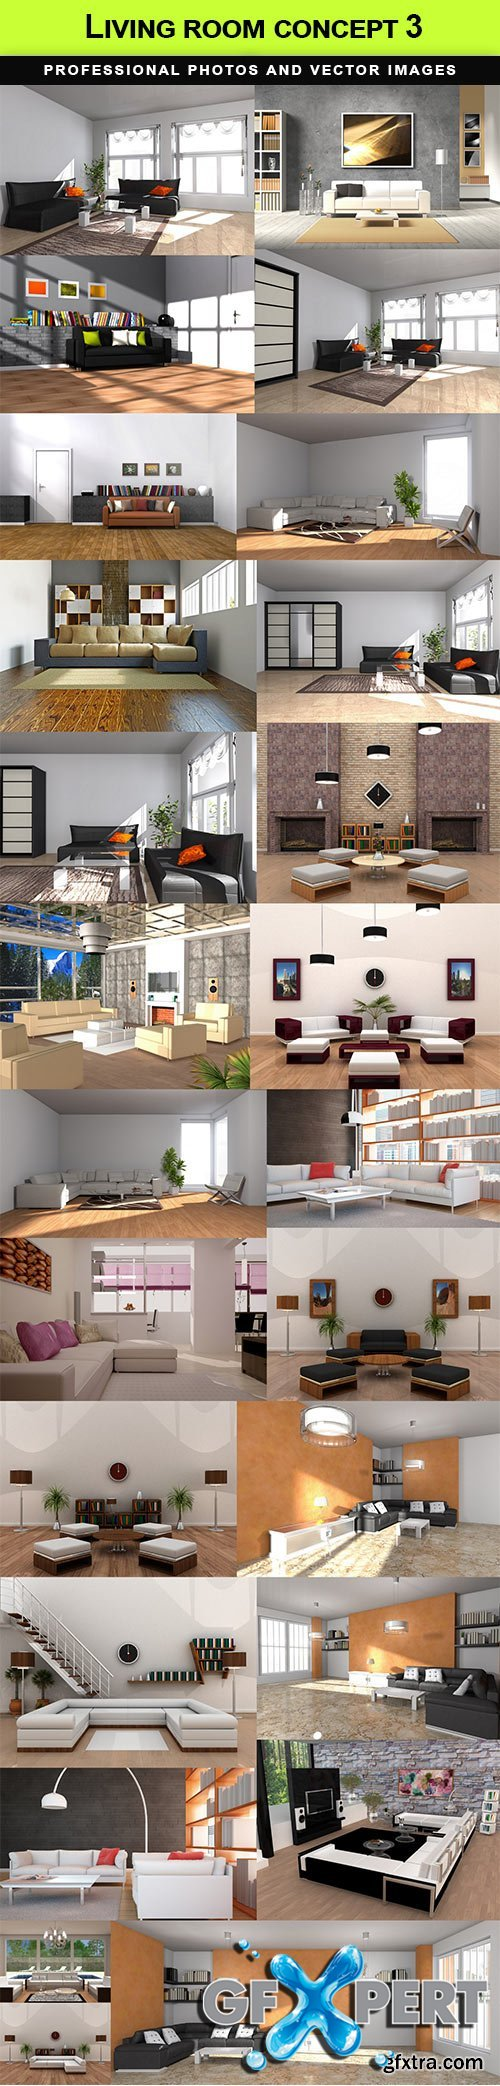 Living room concept 3